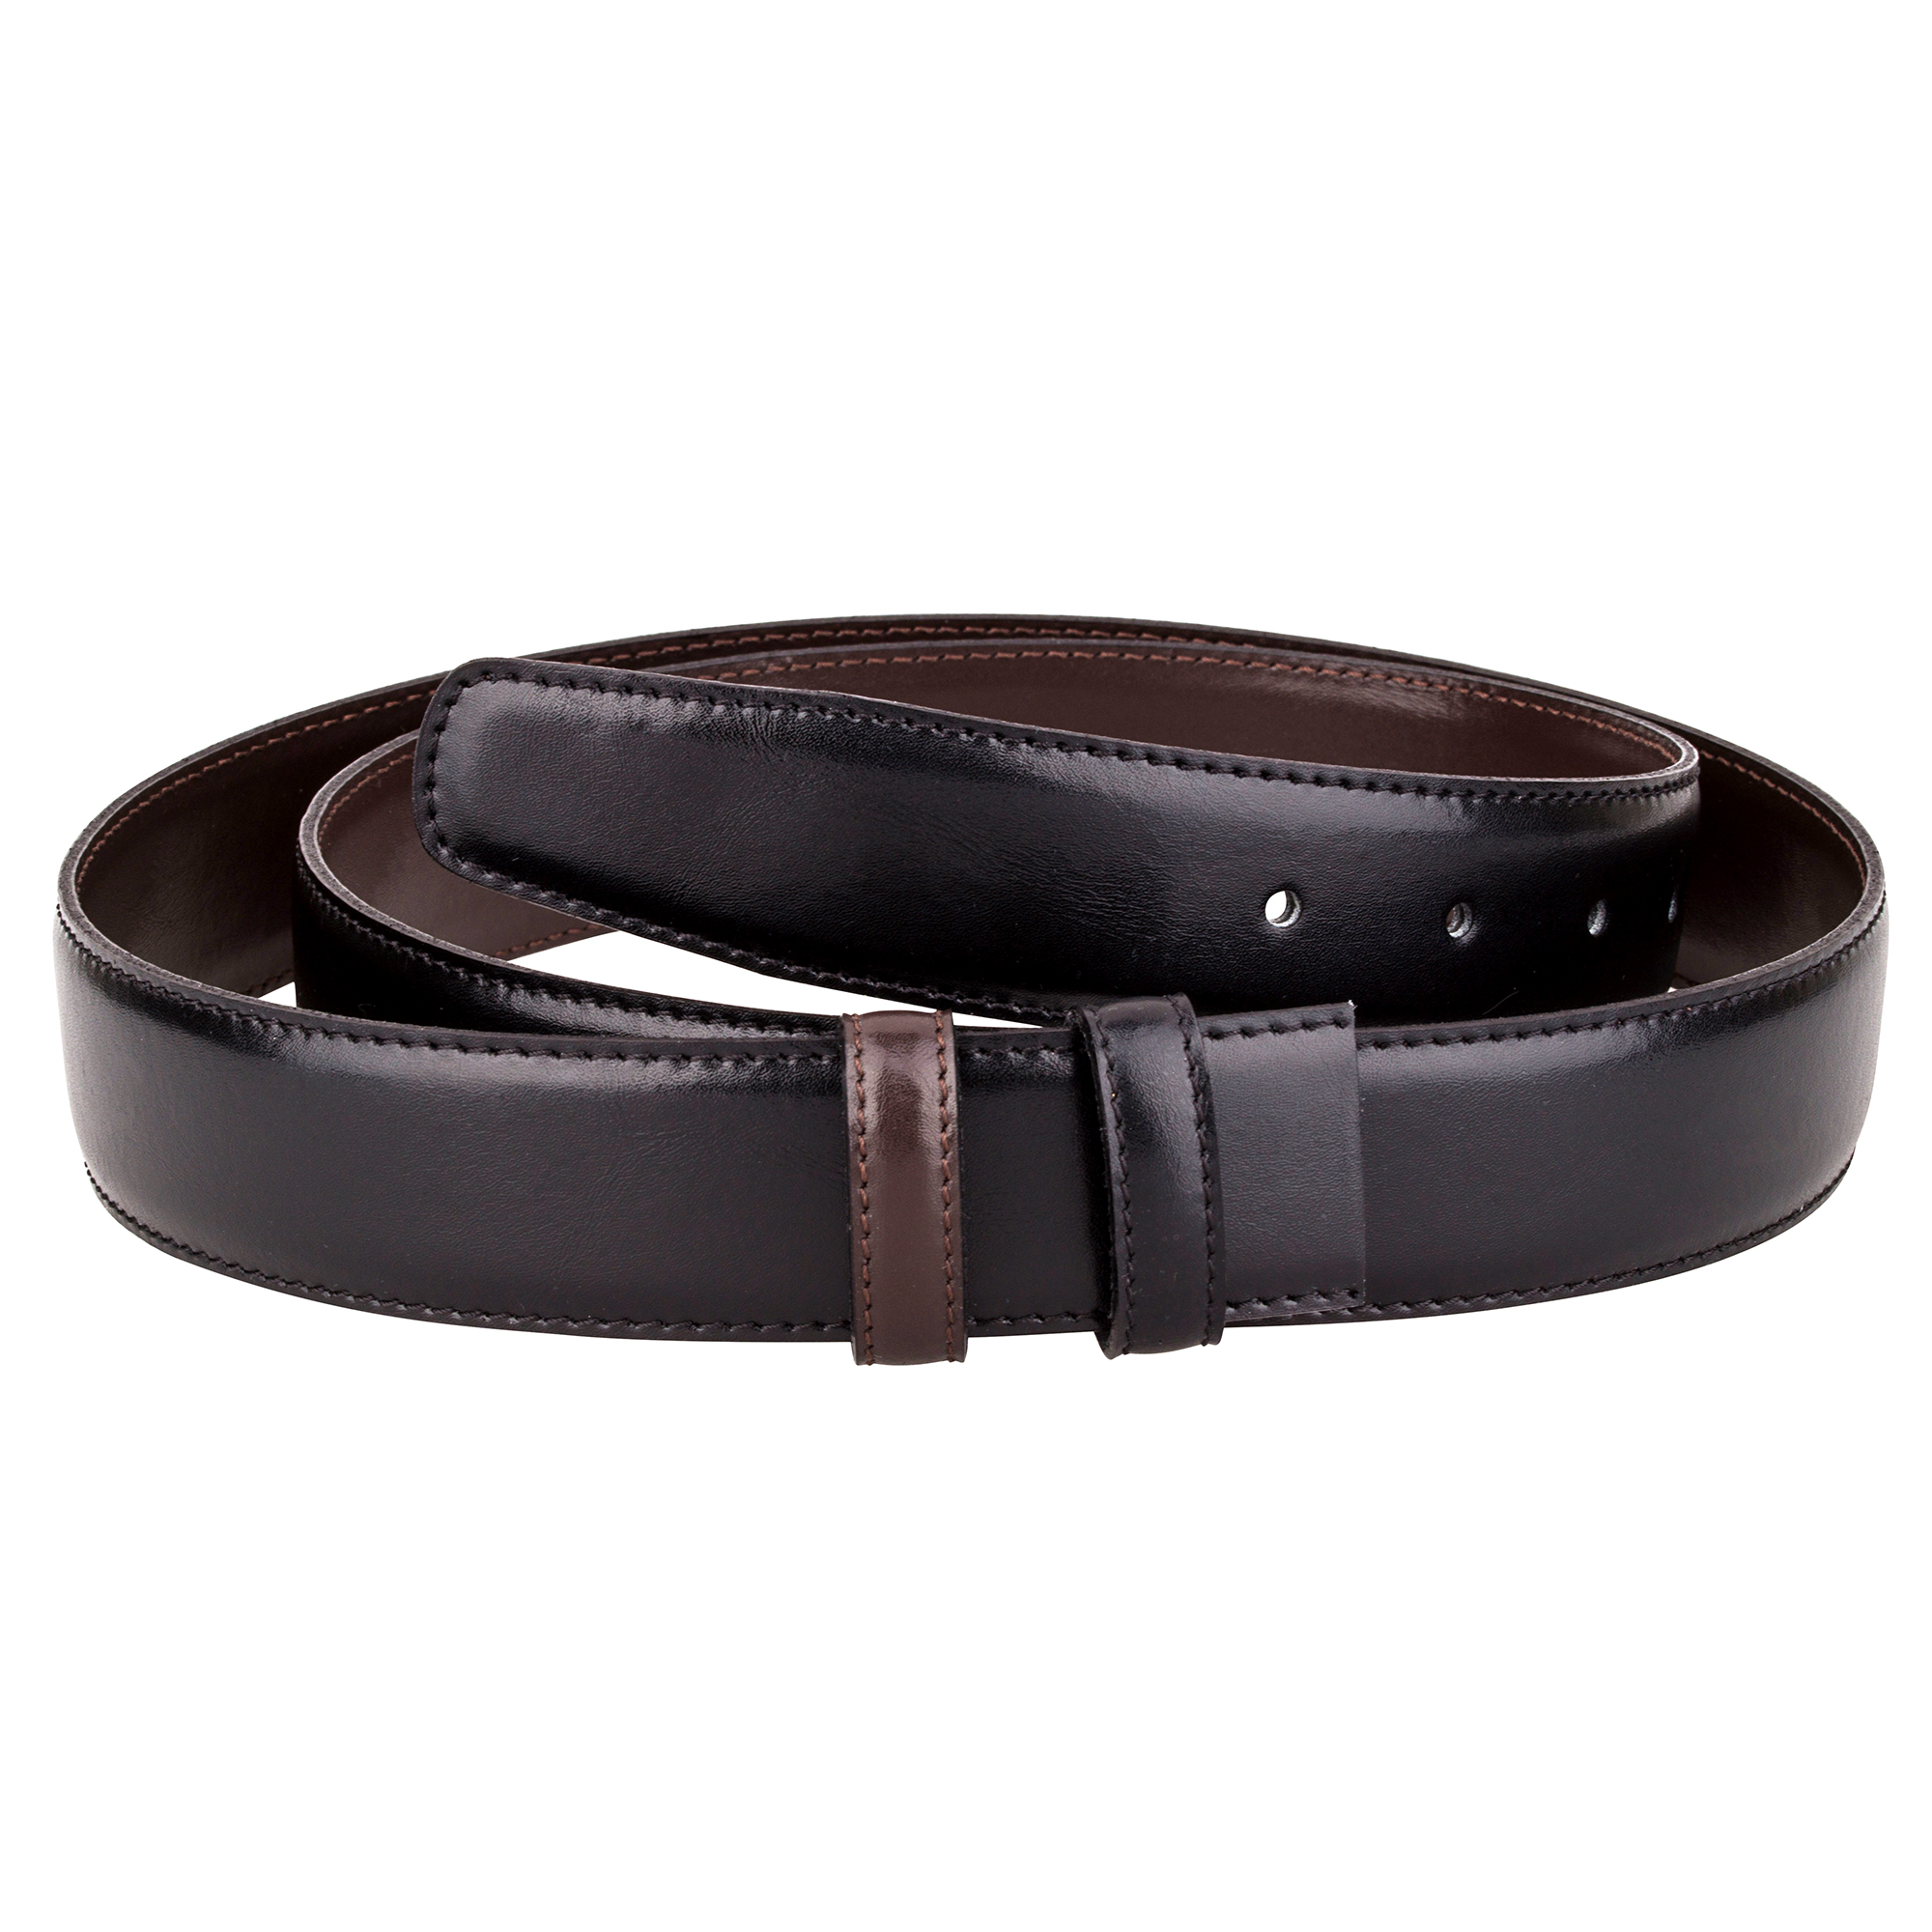 Men's Wearhouse Brown and Black Reversible Big and Tall Leather Belt $ This fine quality leather belt reverses from all black to all brown with the twist of its matte silver-tone belt buckle.